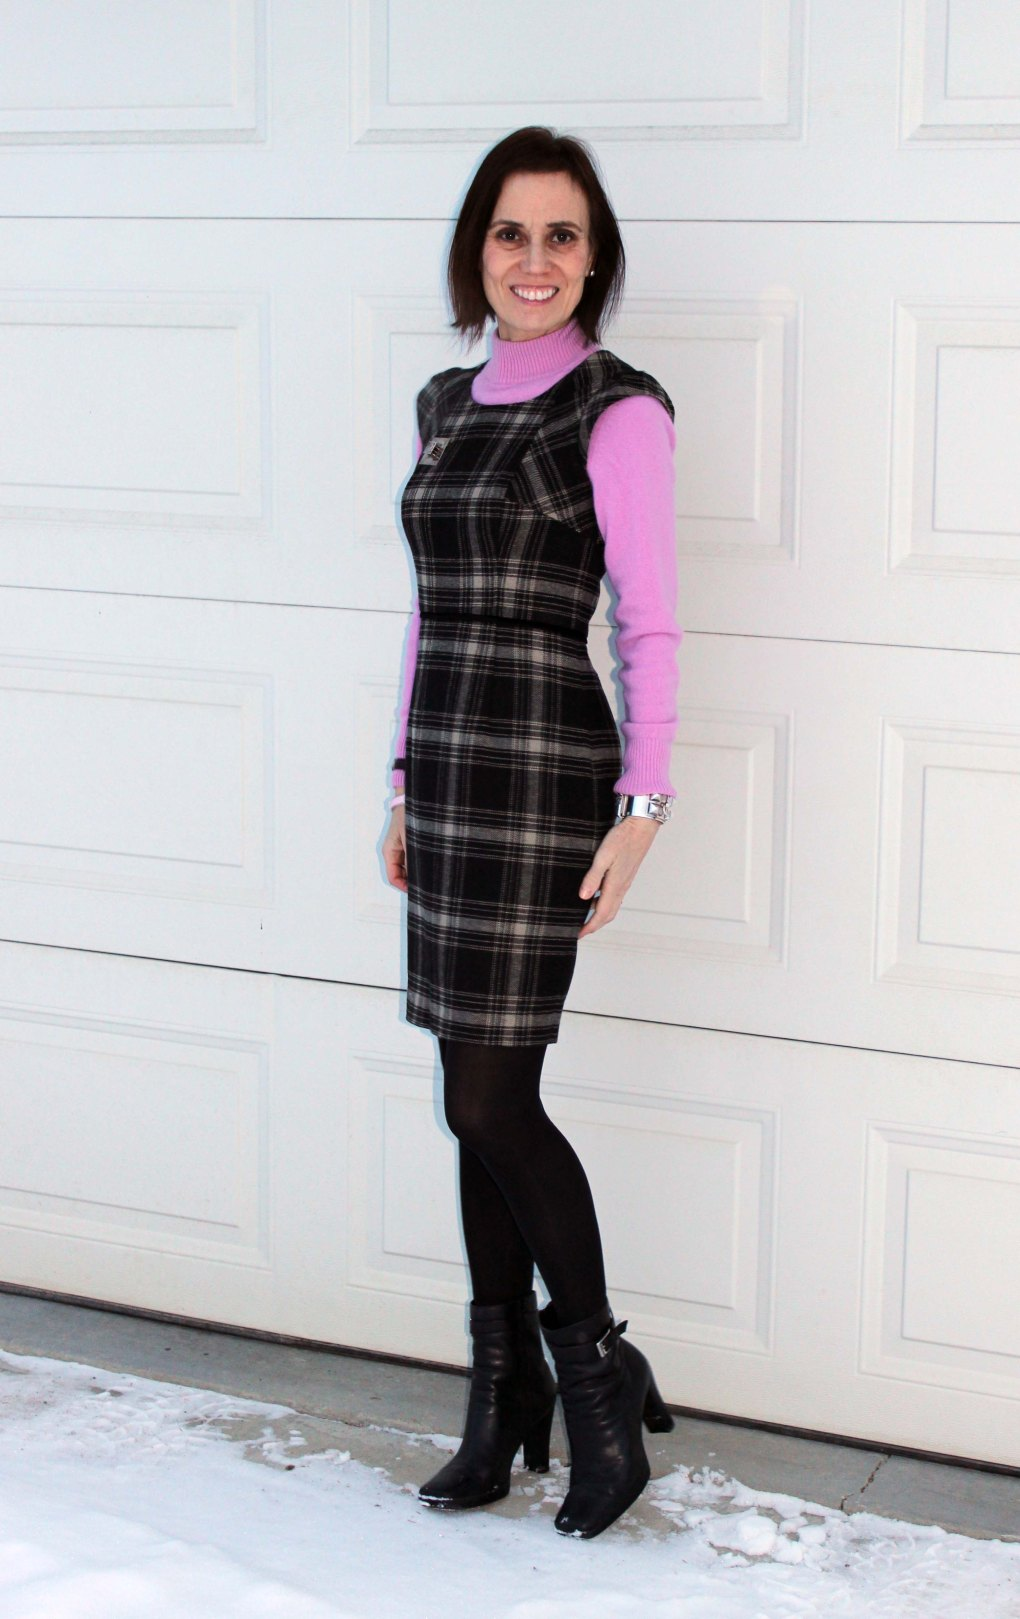 fashion over 40woman in mockneck cashmere sweater under a sheath dress